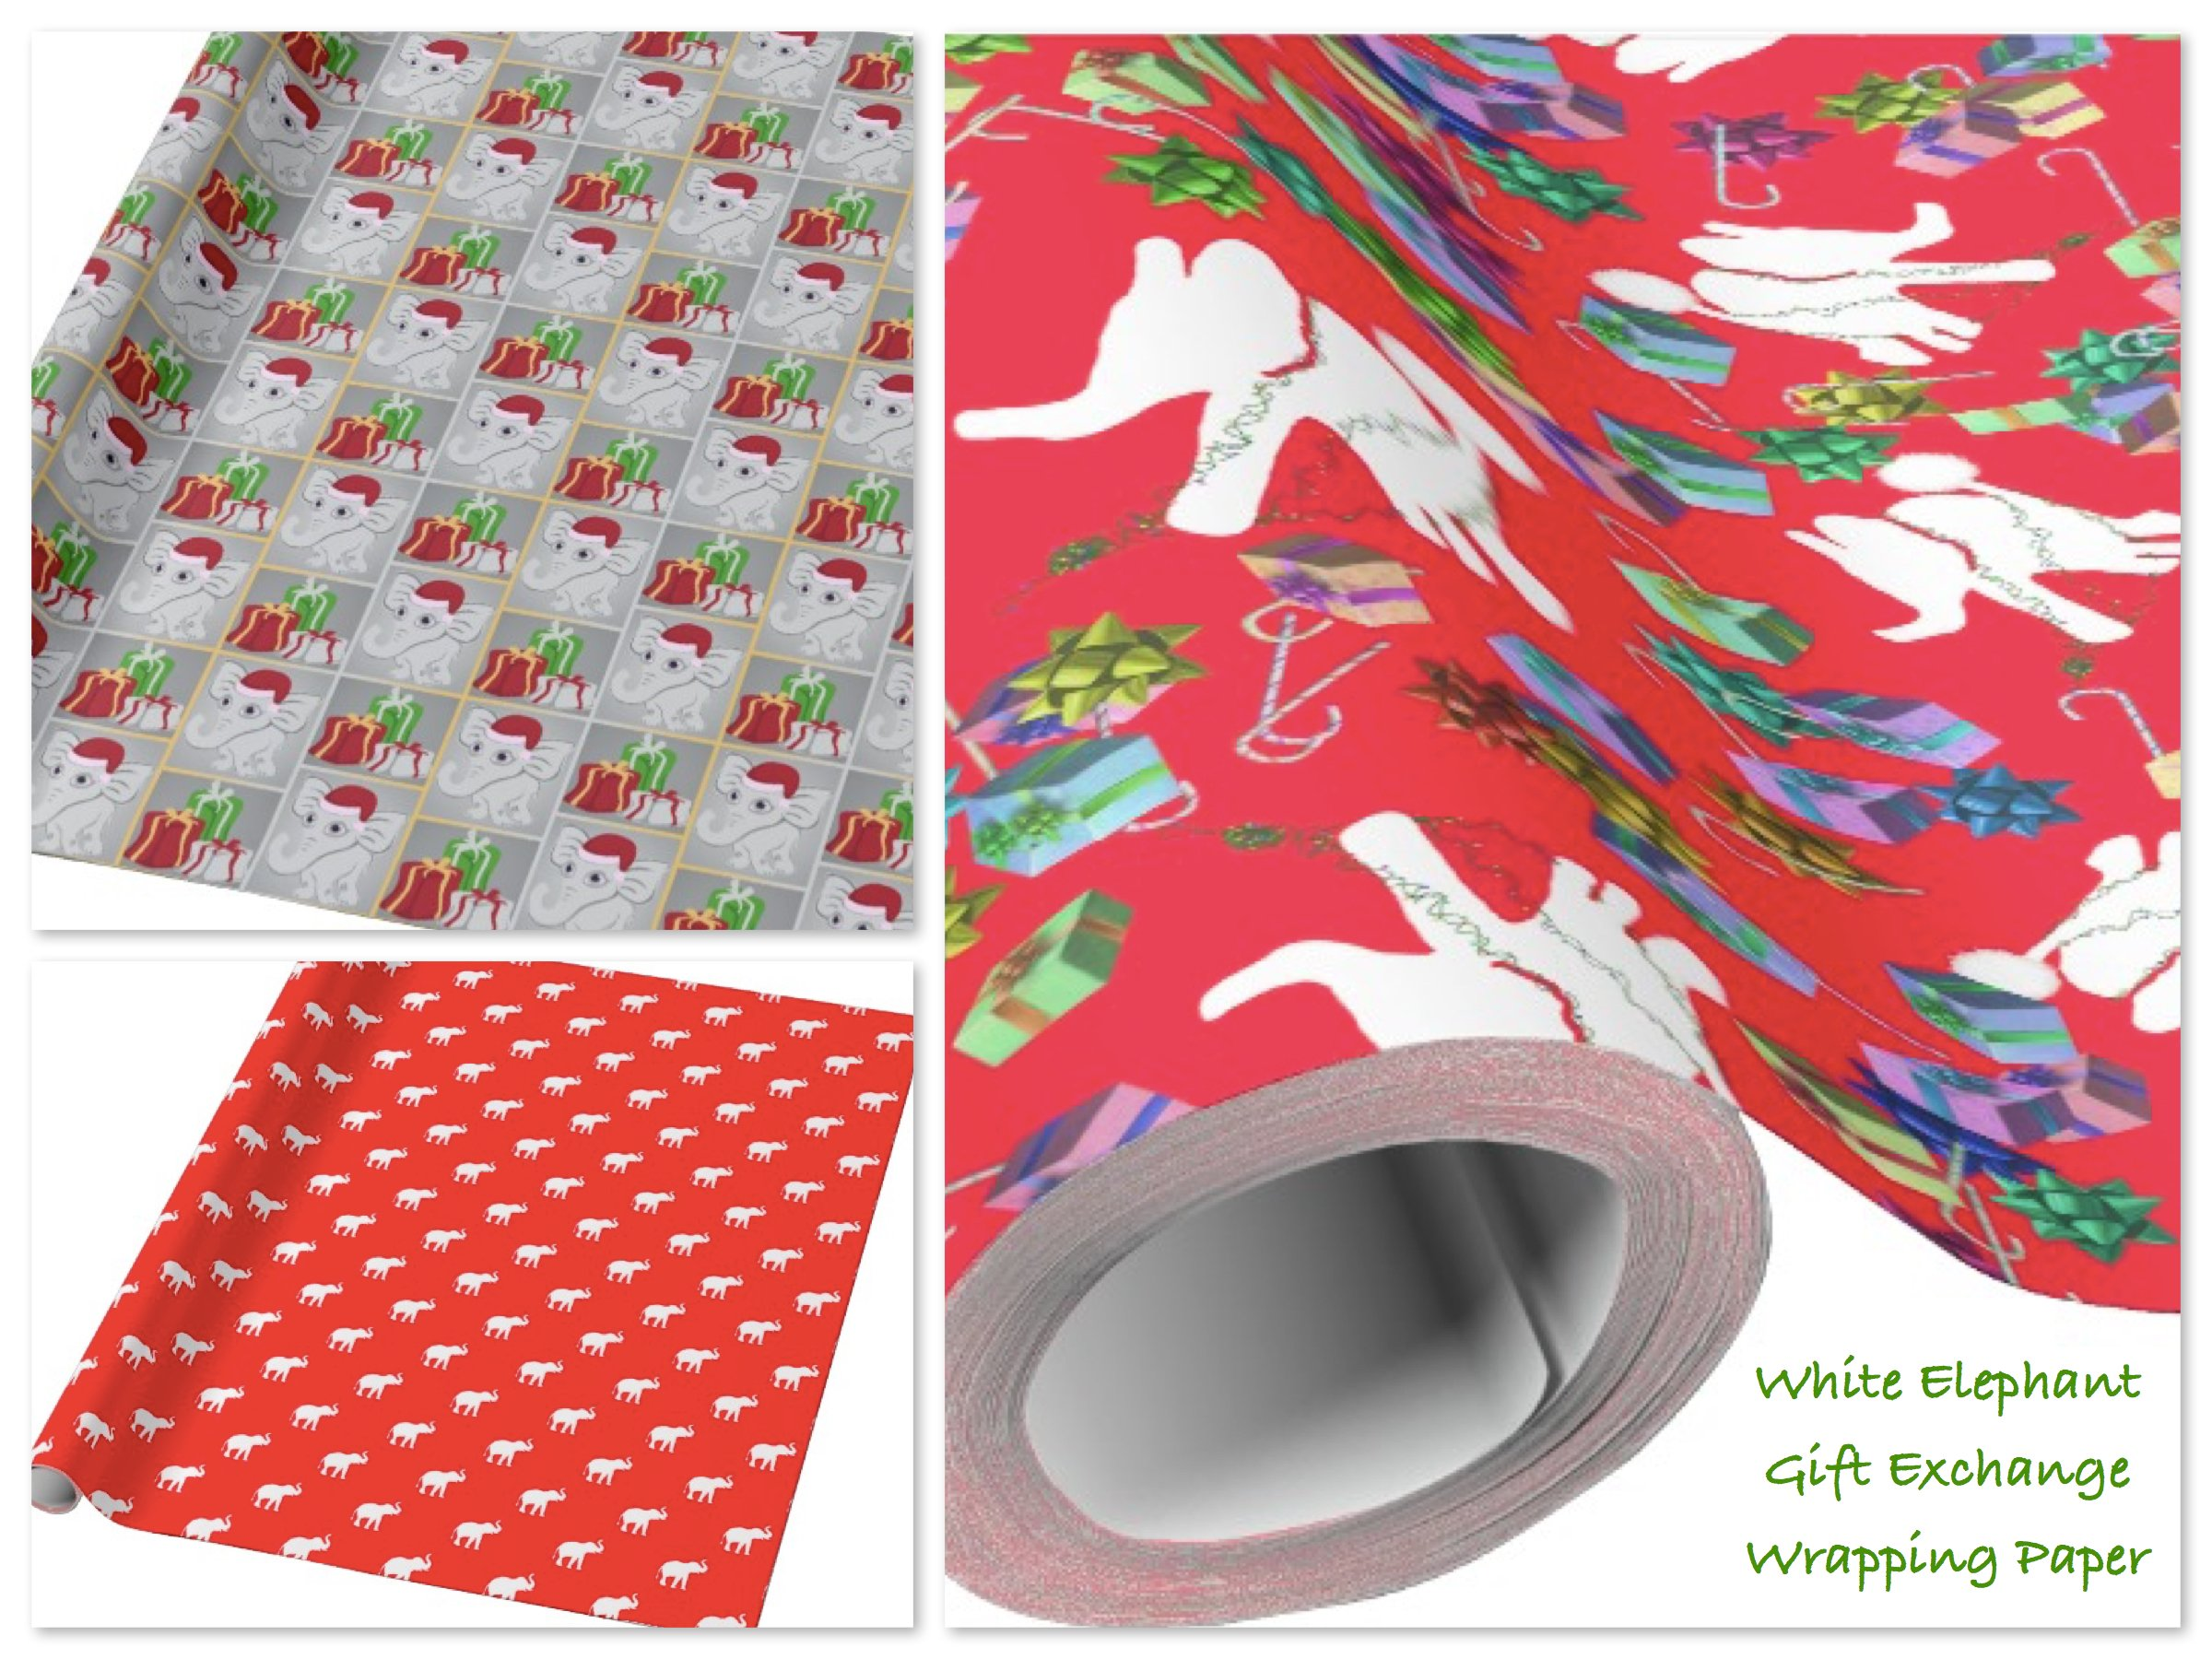 White Elephant Gift Exchange Holiday Wrapping Paper